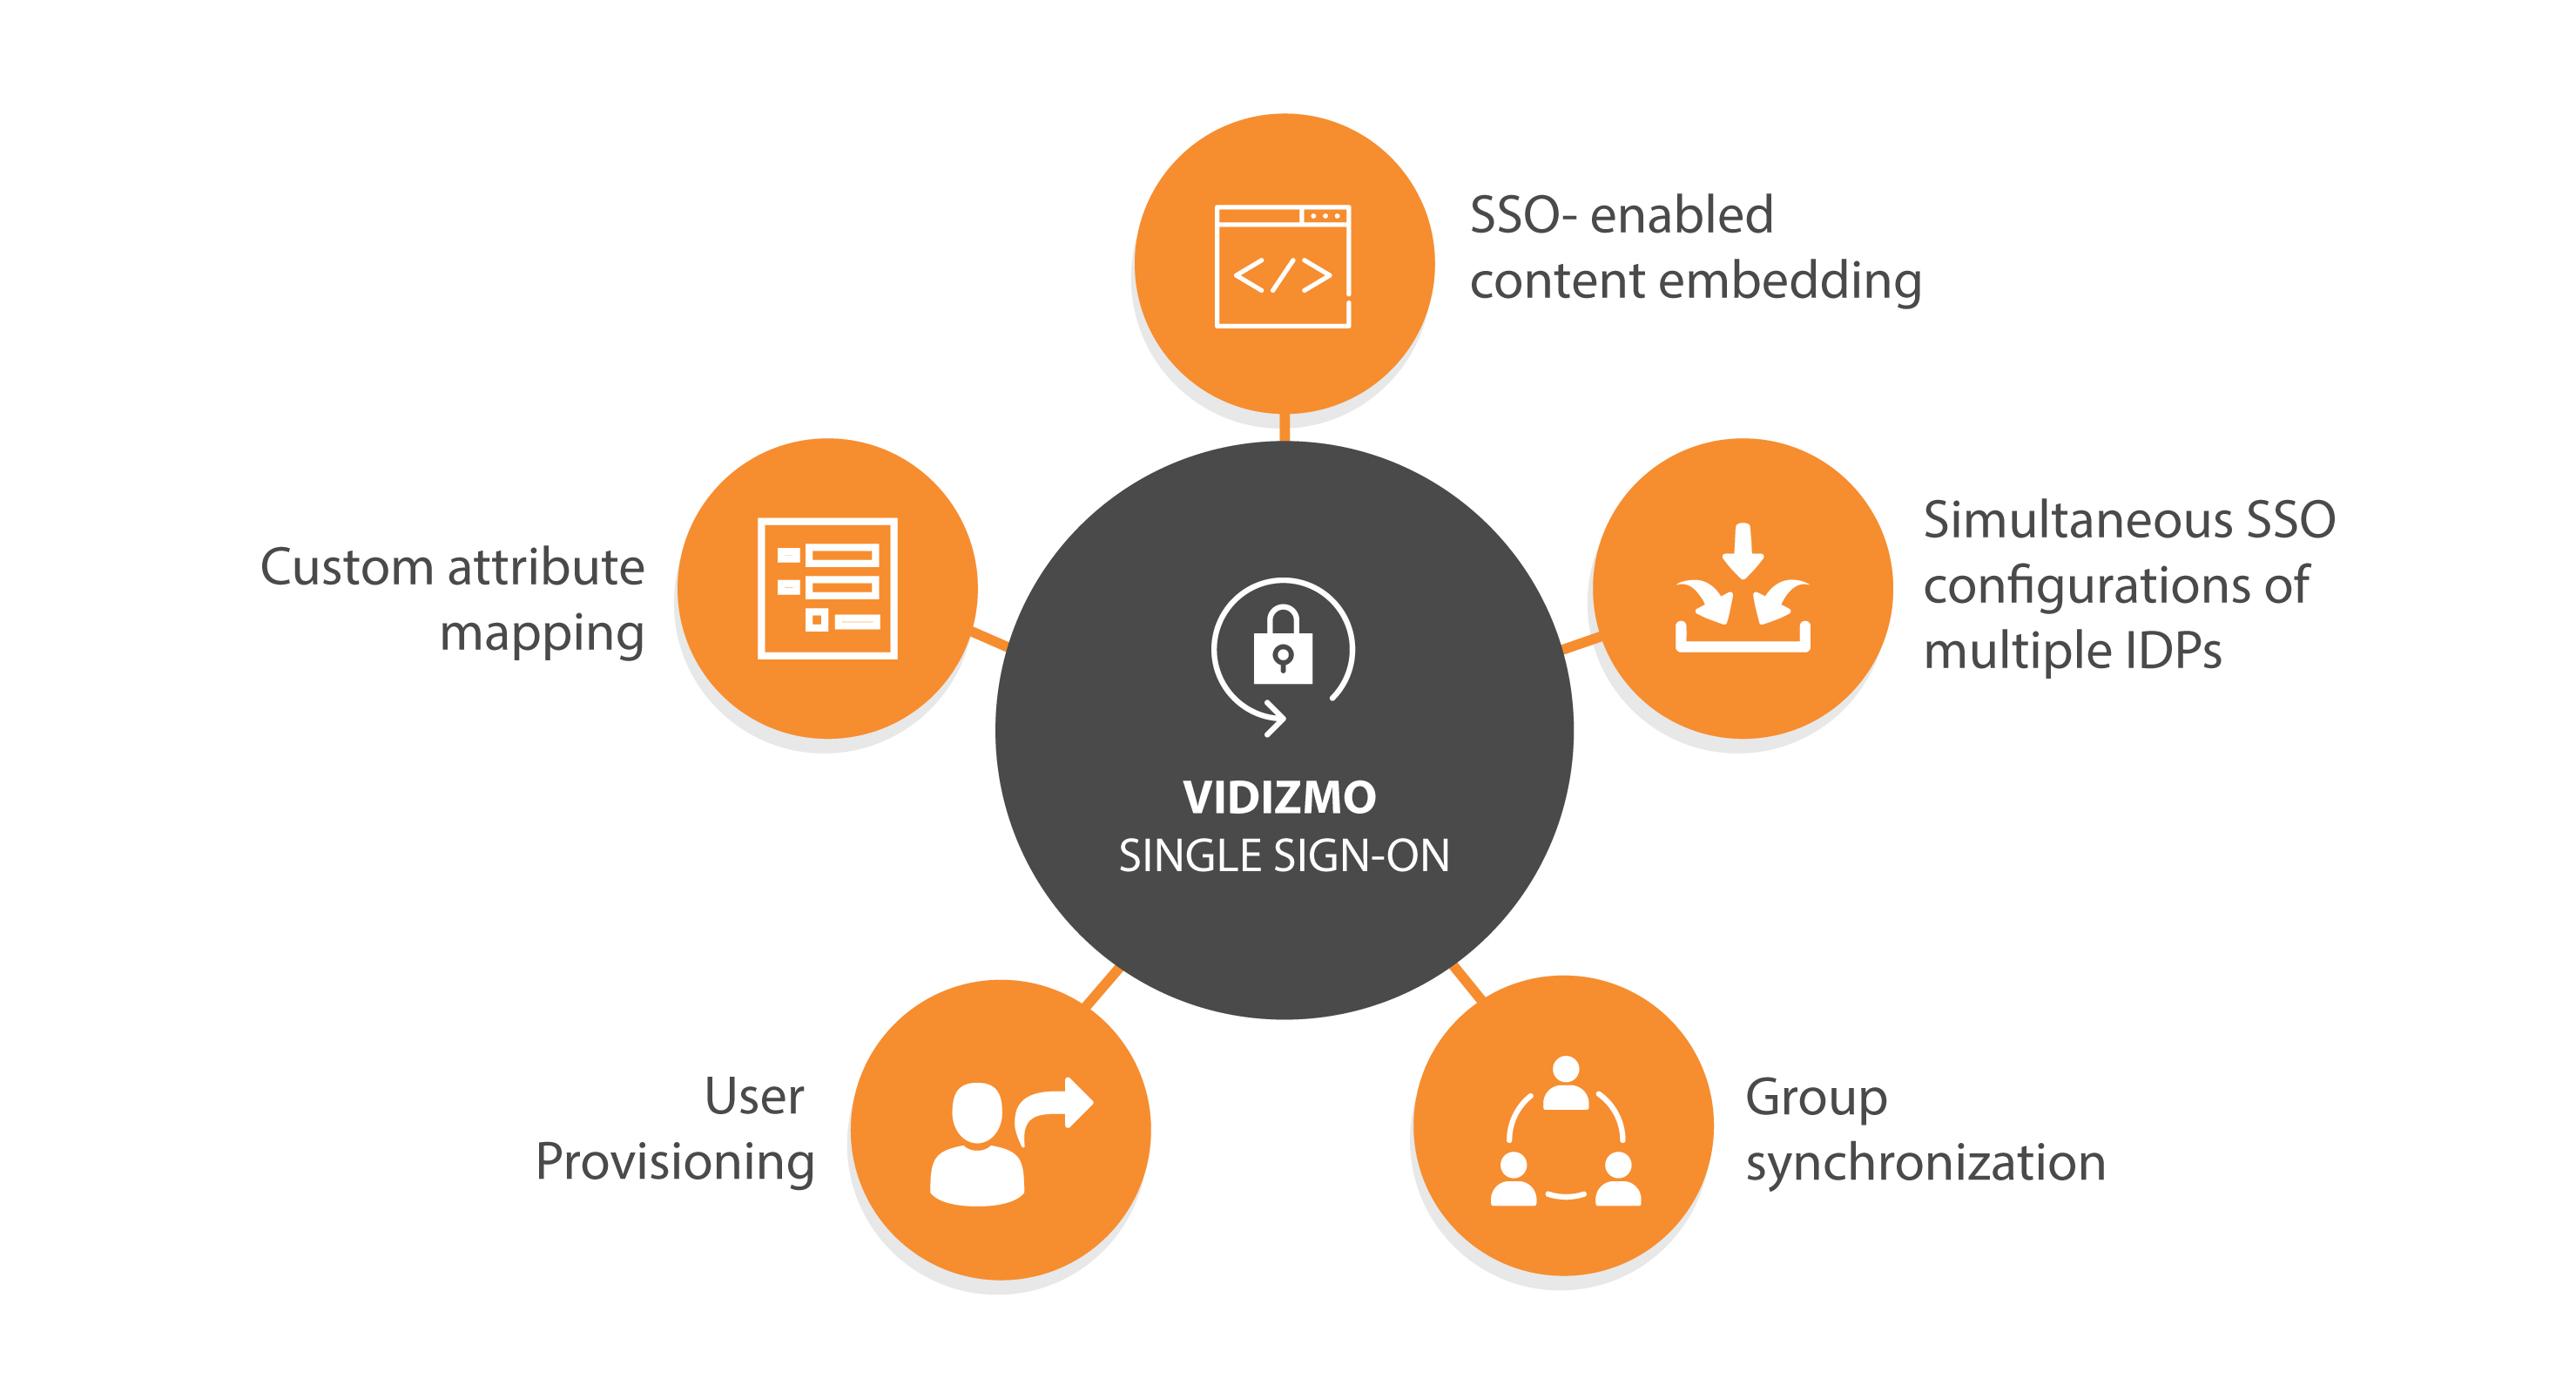 5 Things You Should Know About VIDIZMO Single Sign-On